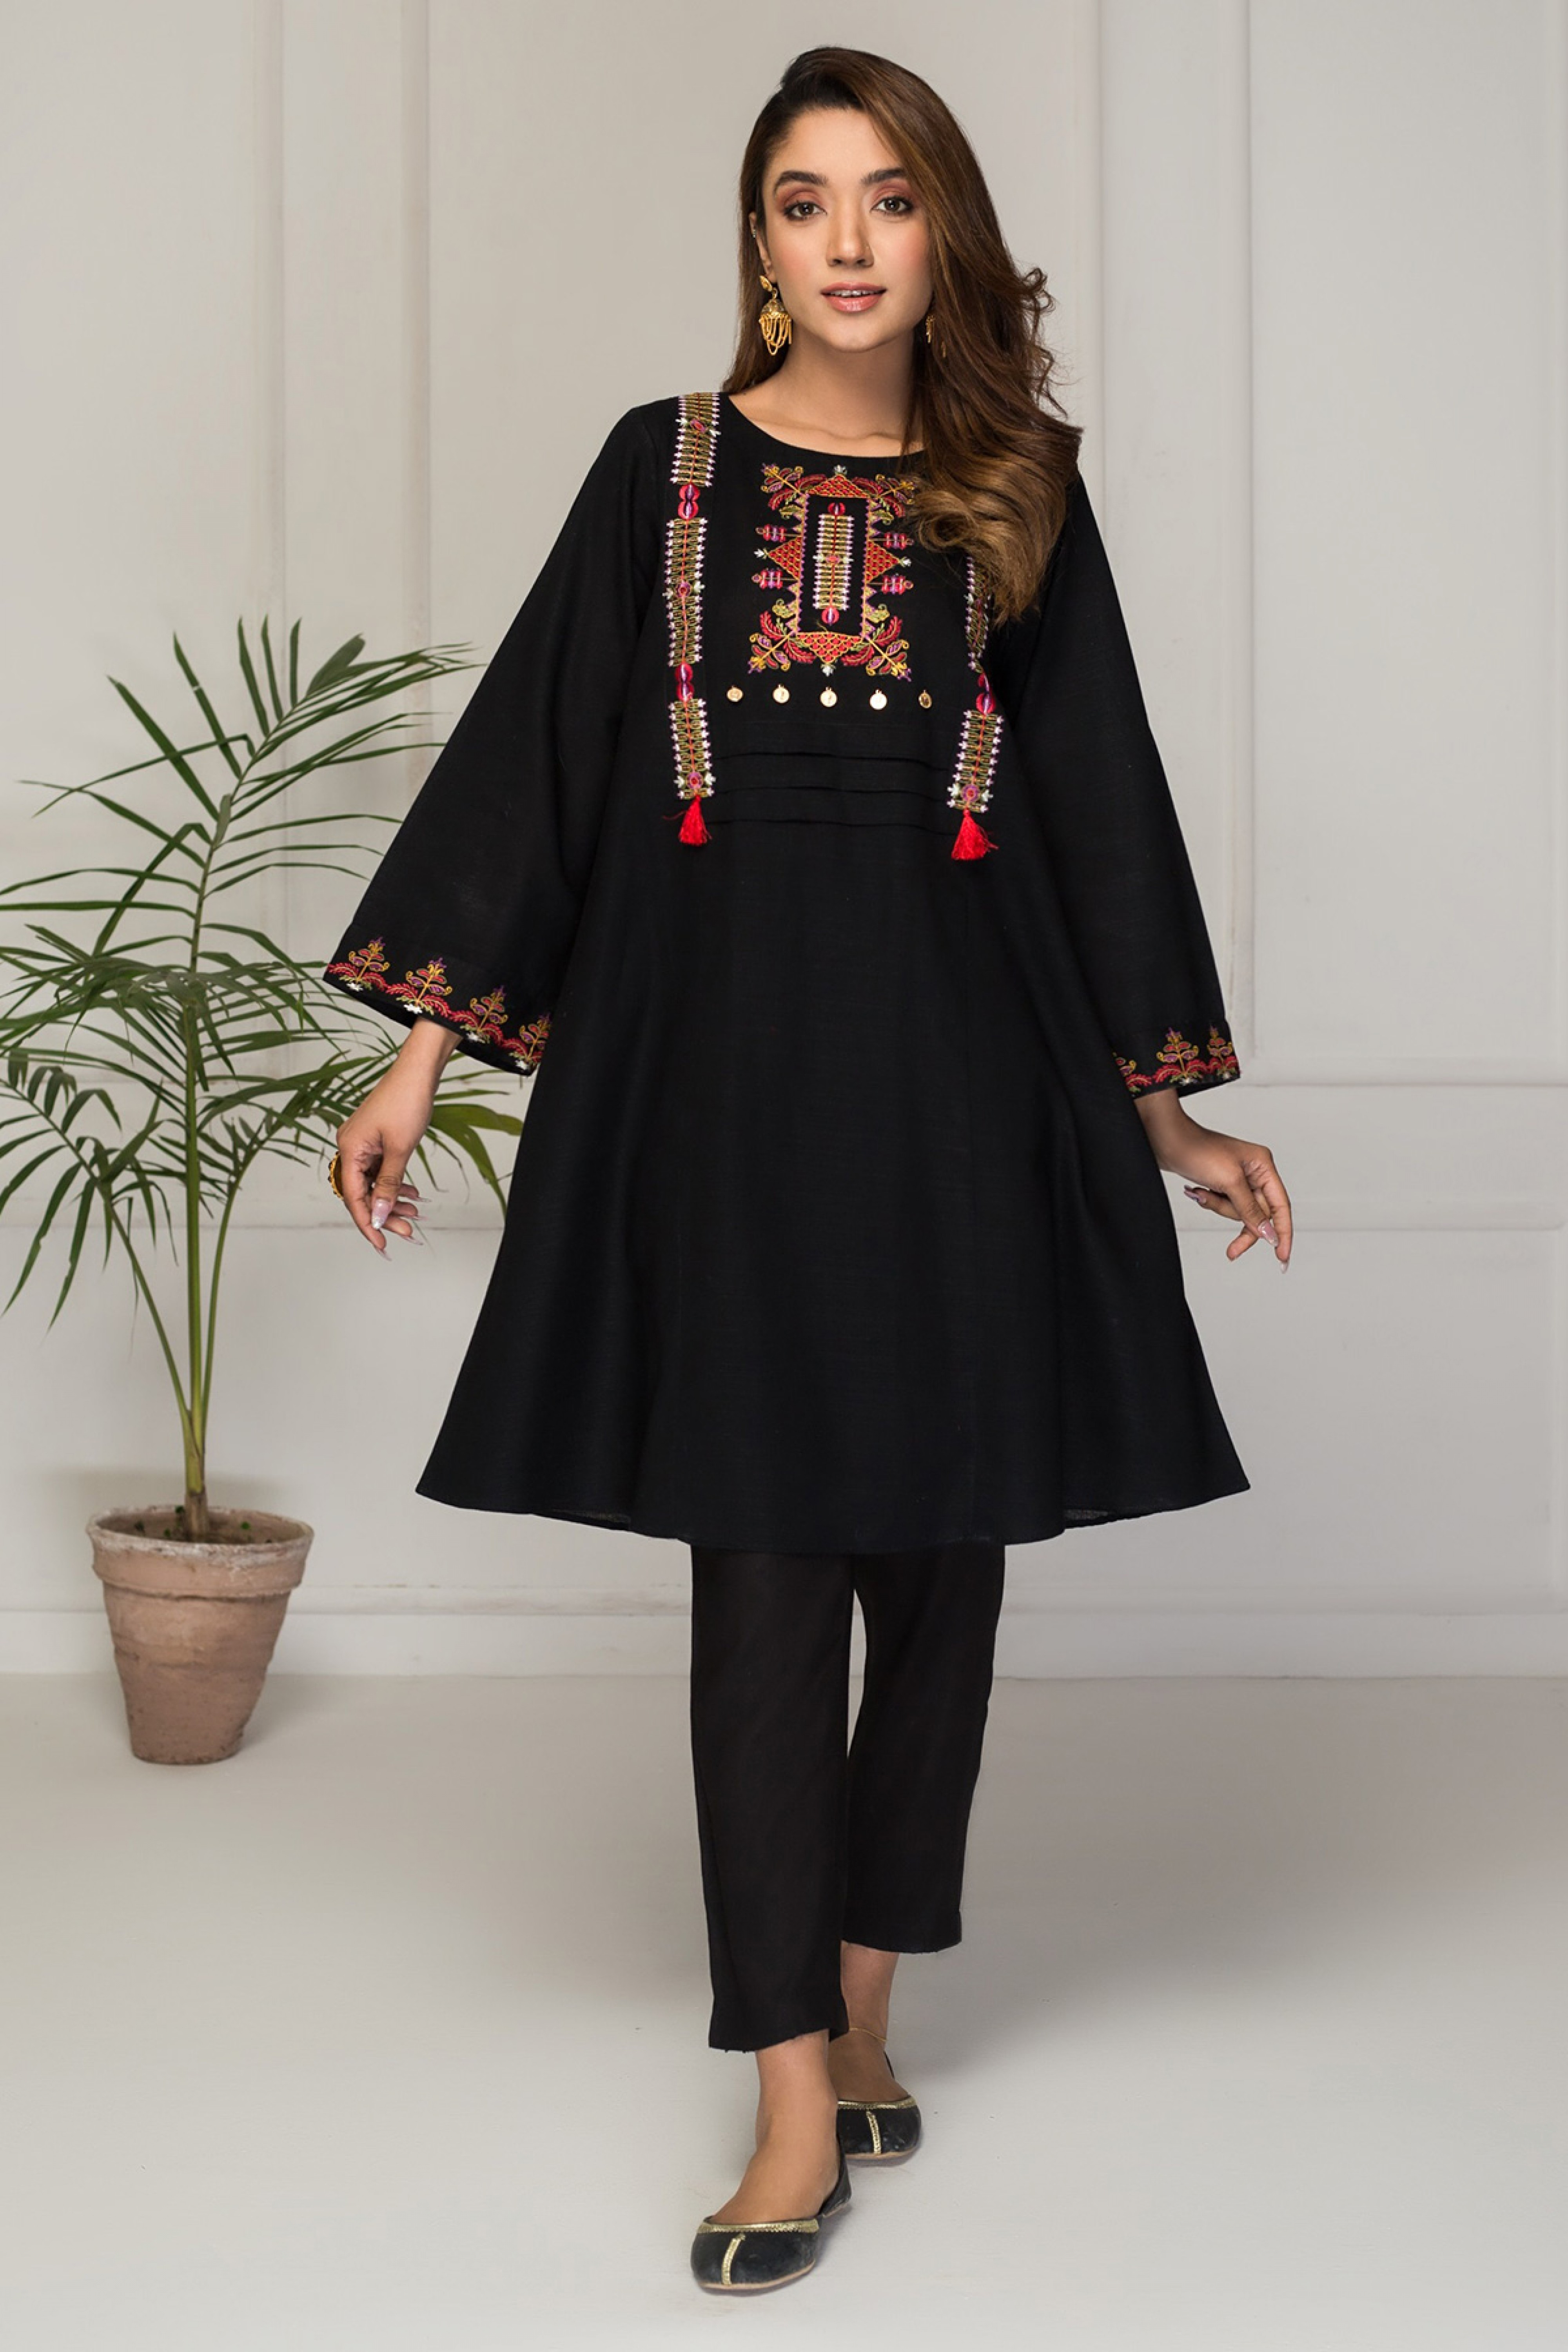 WIND SONG(Embroidered Frock)